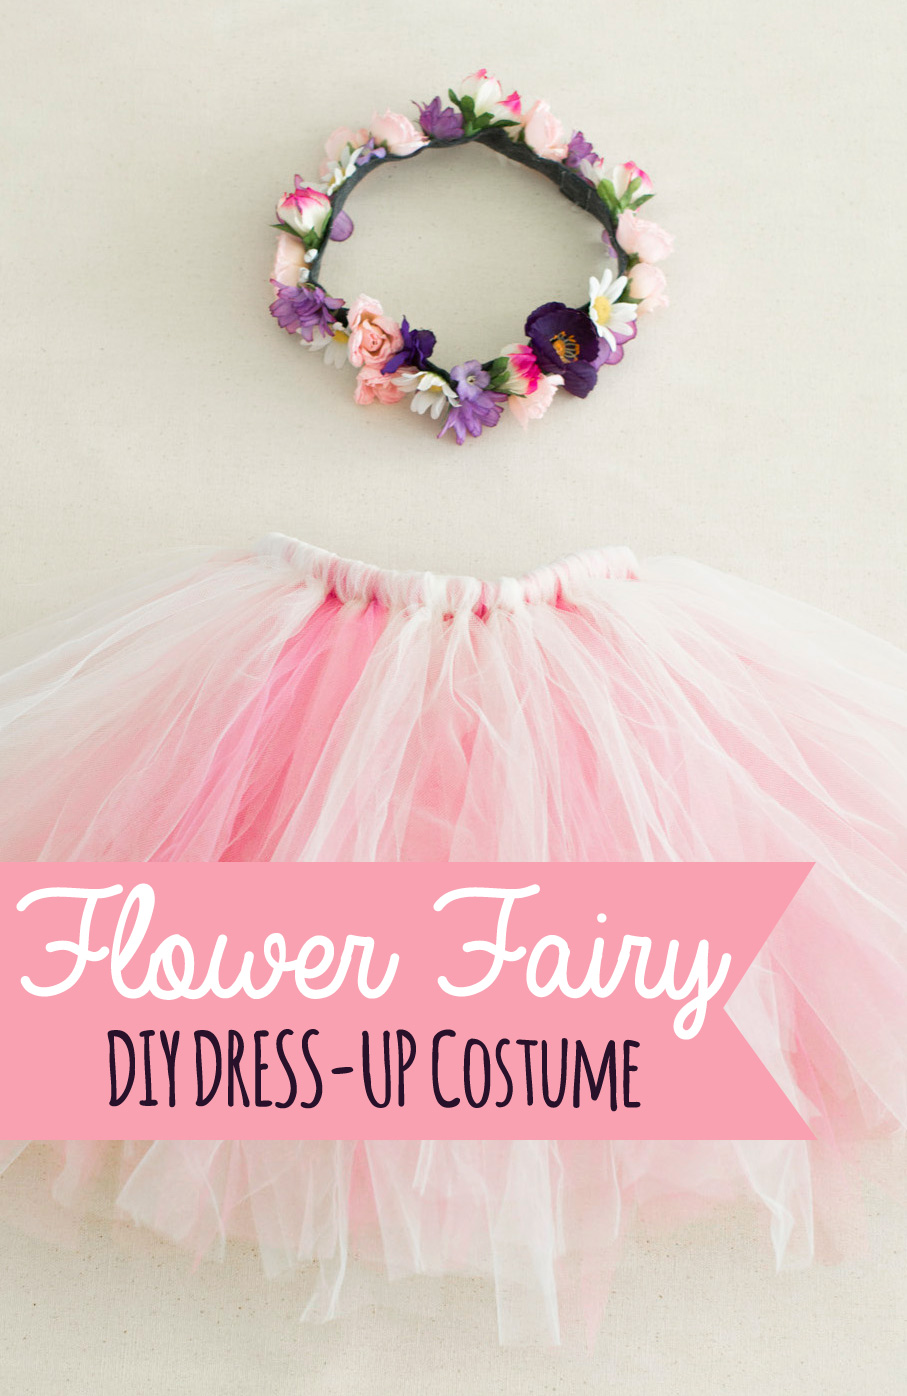 The nonpareil home diy costume flower fairy pretty quick and easy to make all of the costumes this week are perfect for dress ups and you can add a little extra pizazz to use for a perfect halloween solutioingenieria Image collections